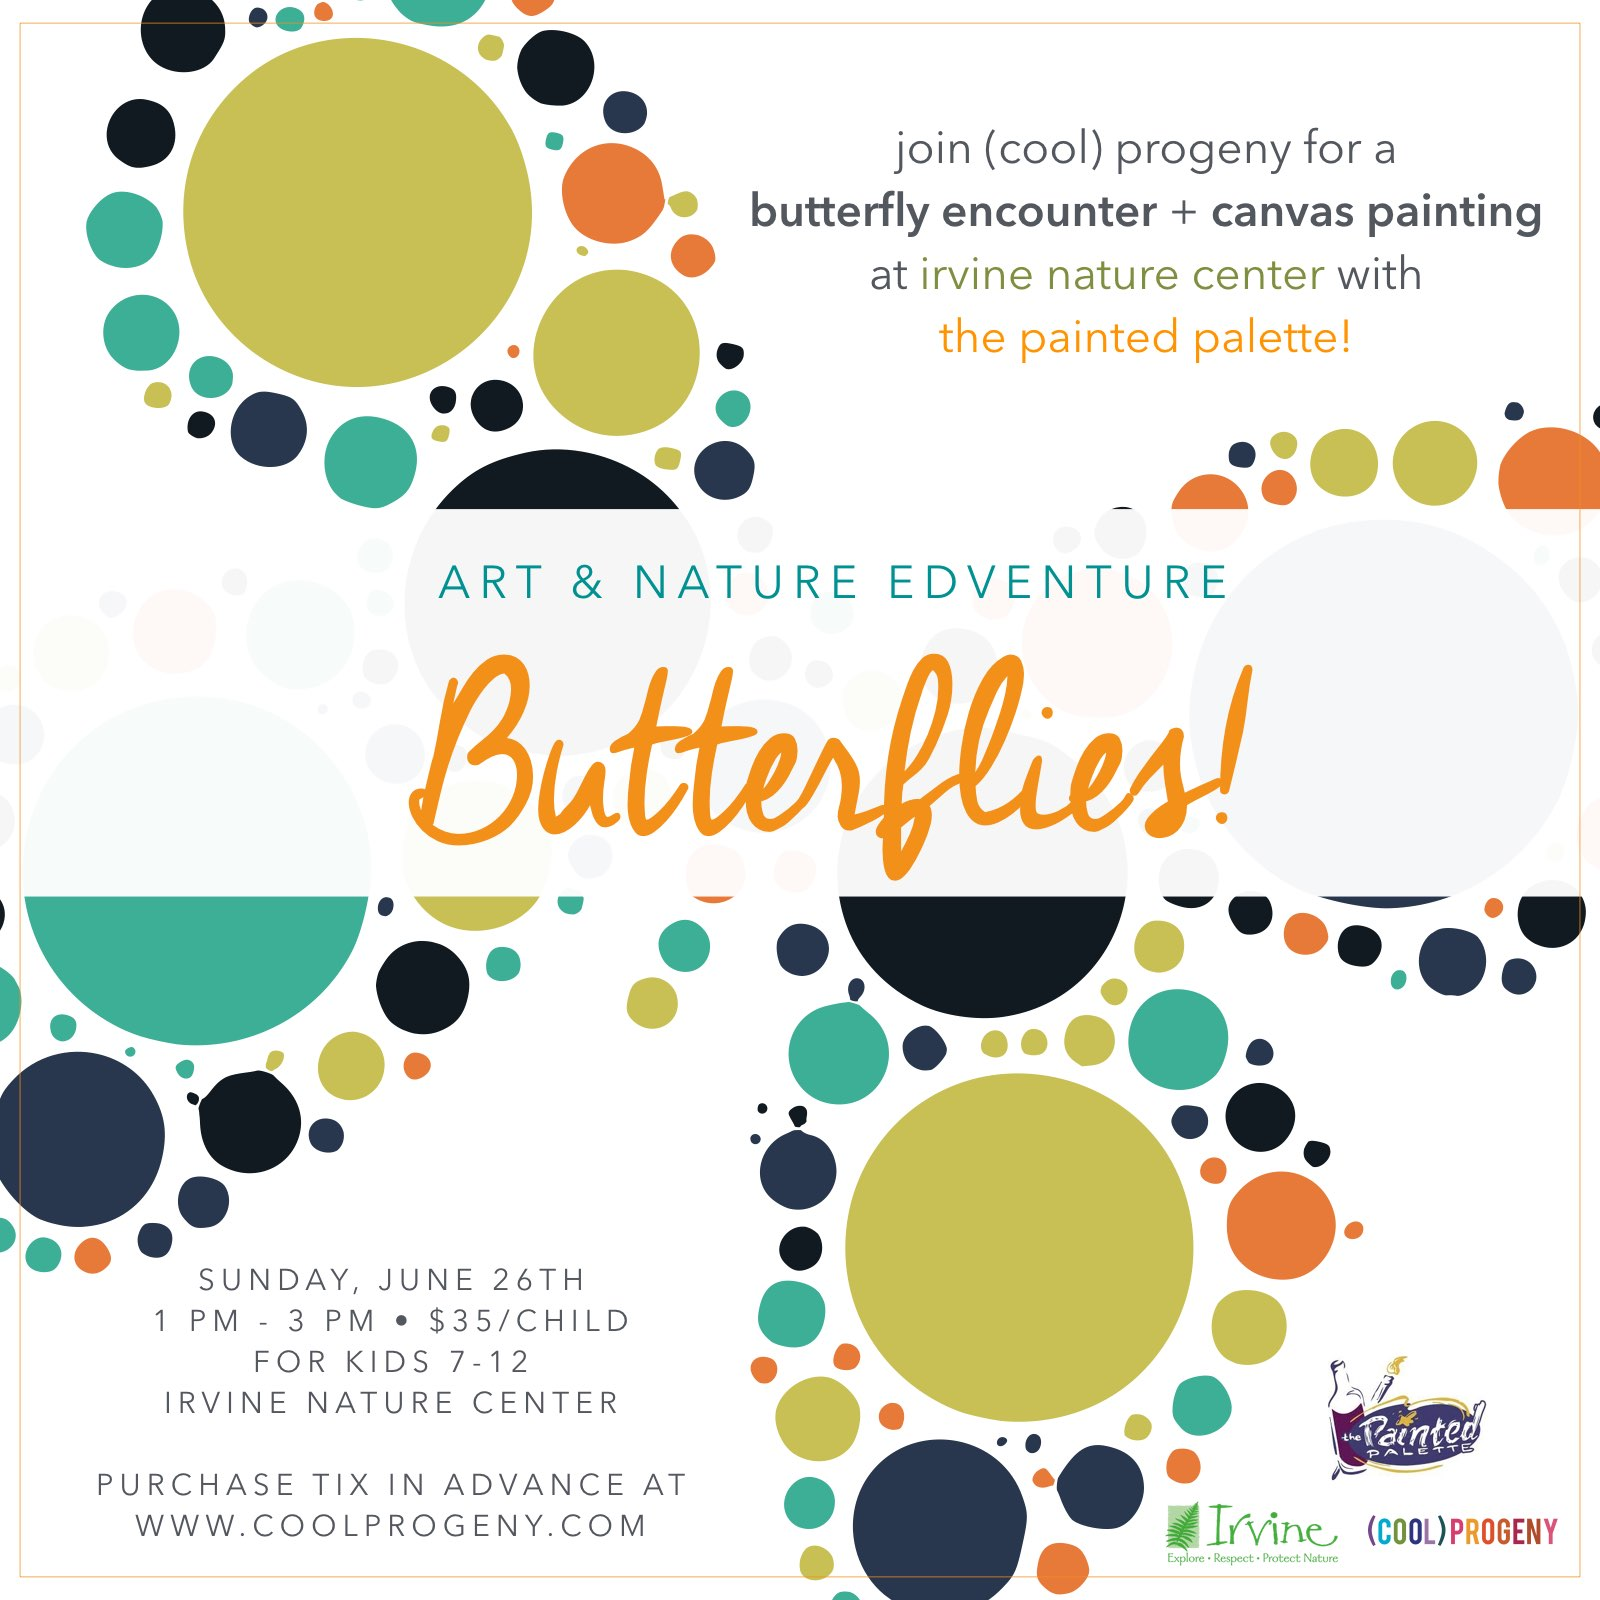 Art and Nature Edventure - Butterflies! - (cool) progeny